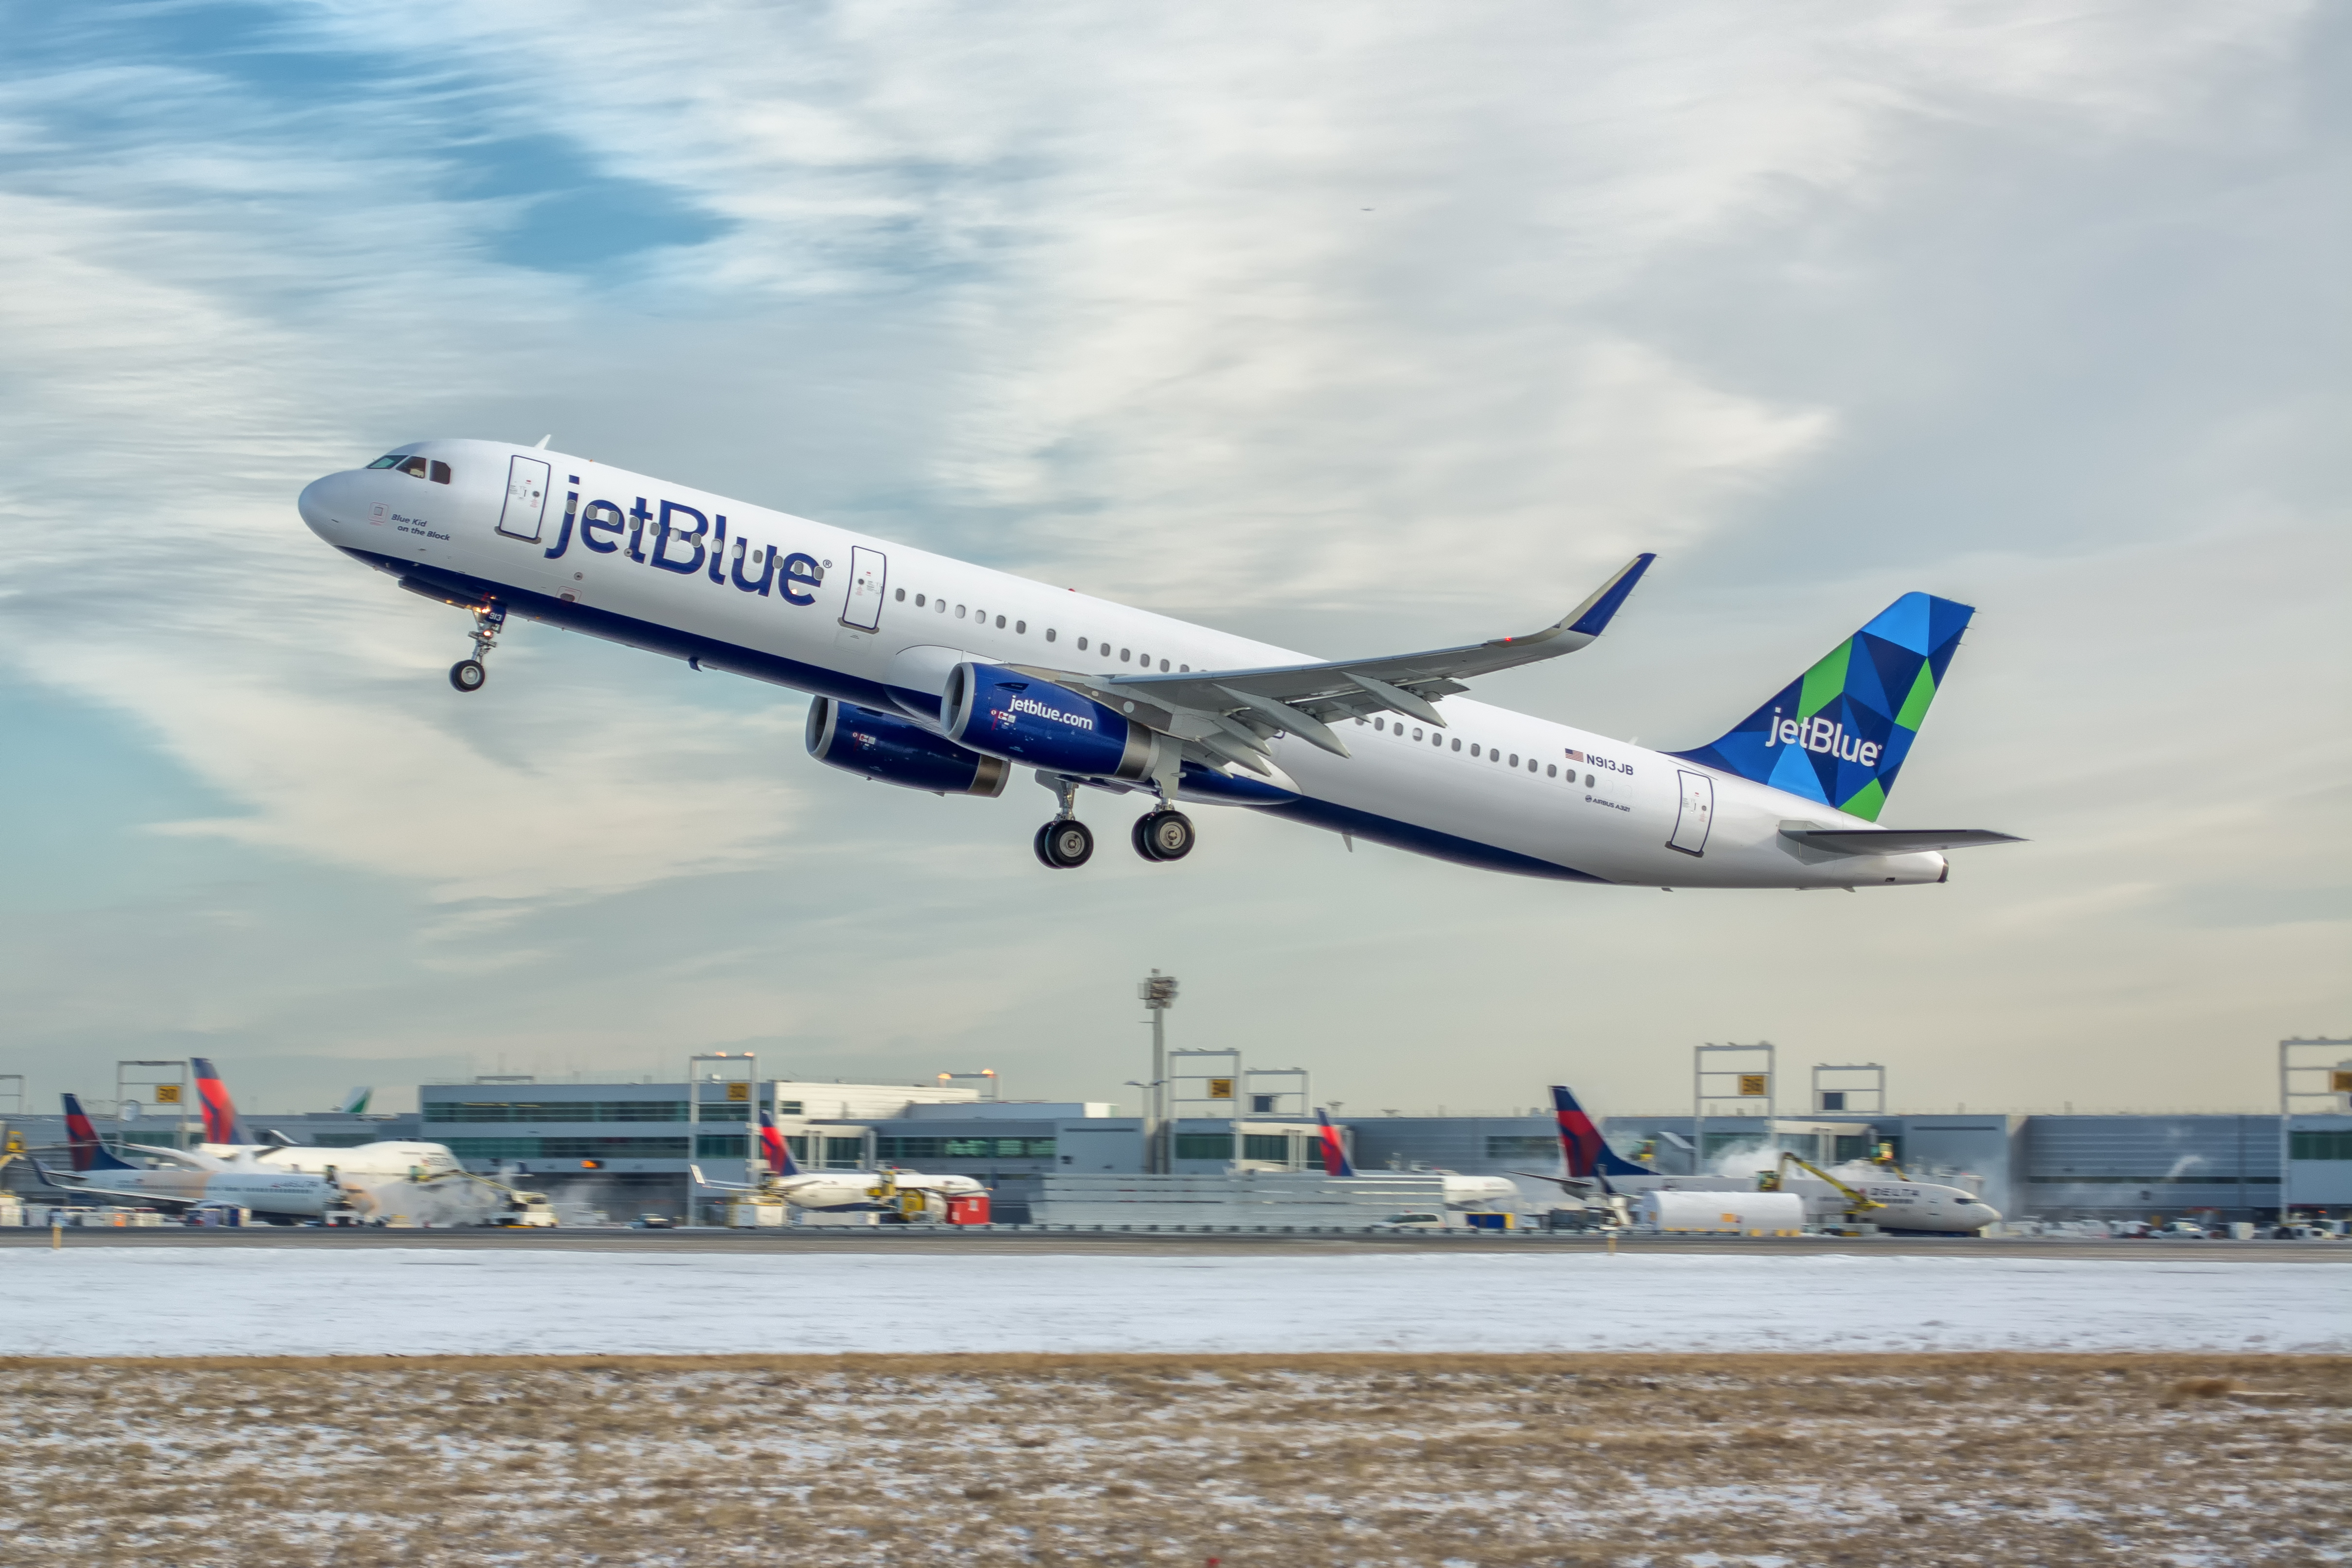 United Abandons Jfk While Jetblue Grows Airlinegeeks Com